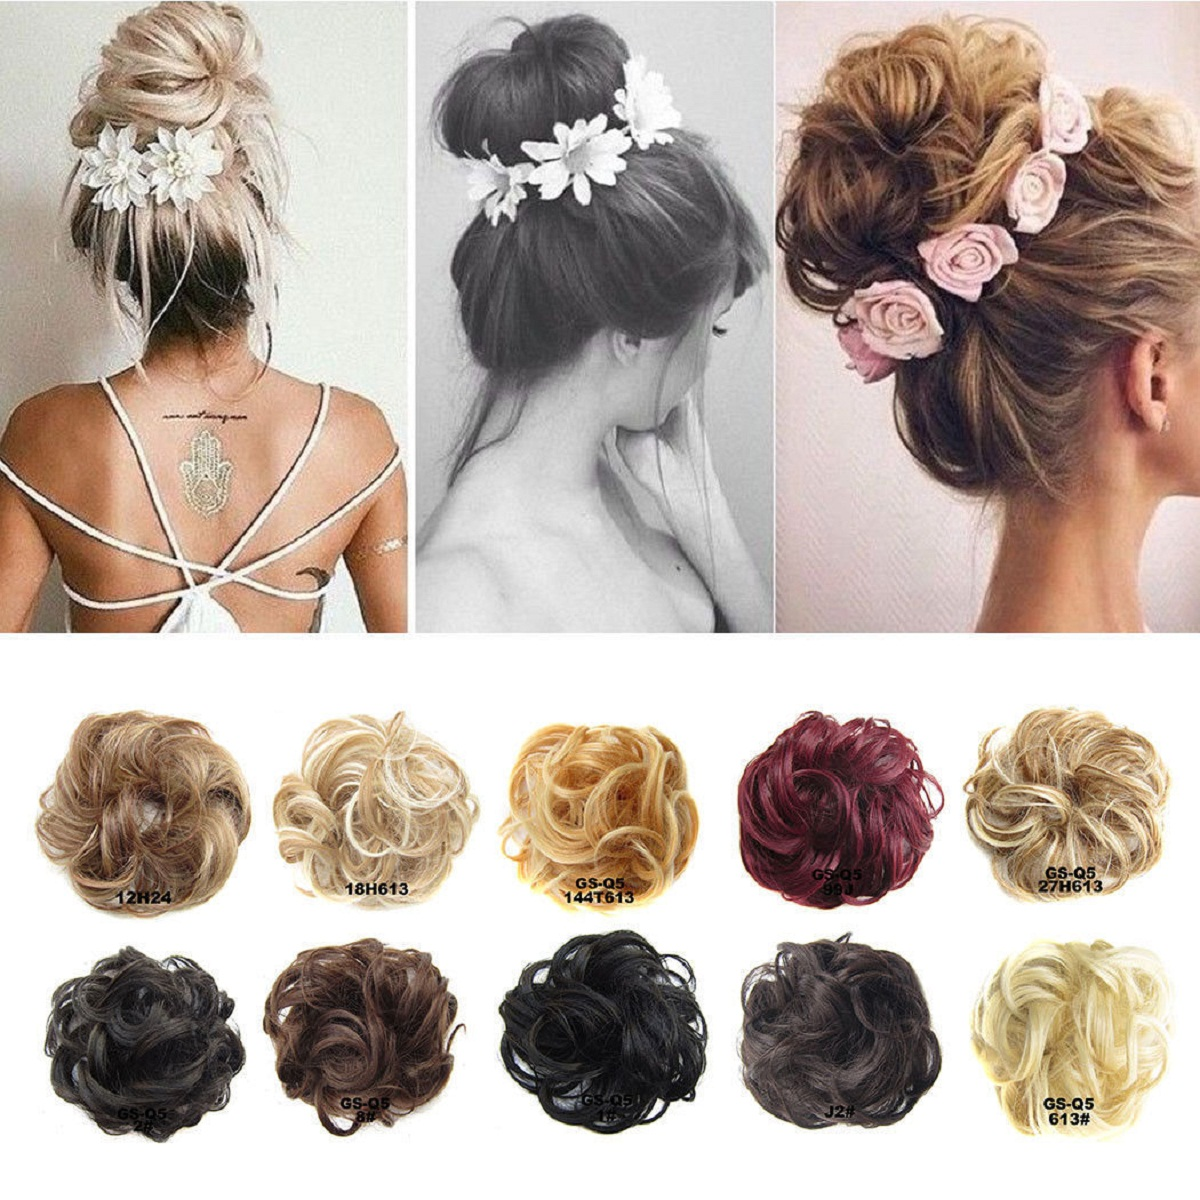 Curly Messy Bun Hair Piece Hair Scrunchie Fake Natural Look Extensions Hairpiece